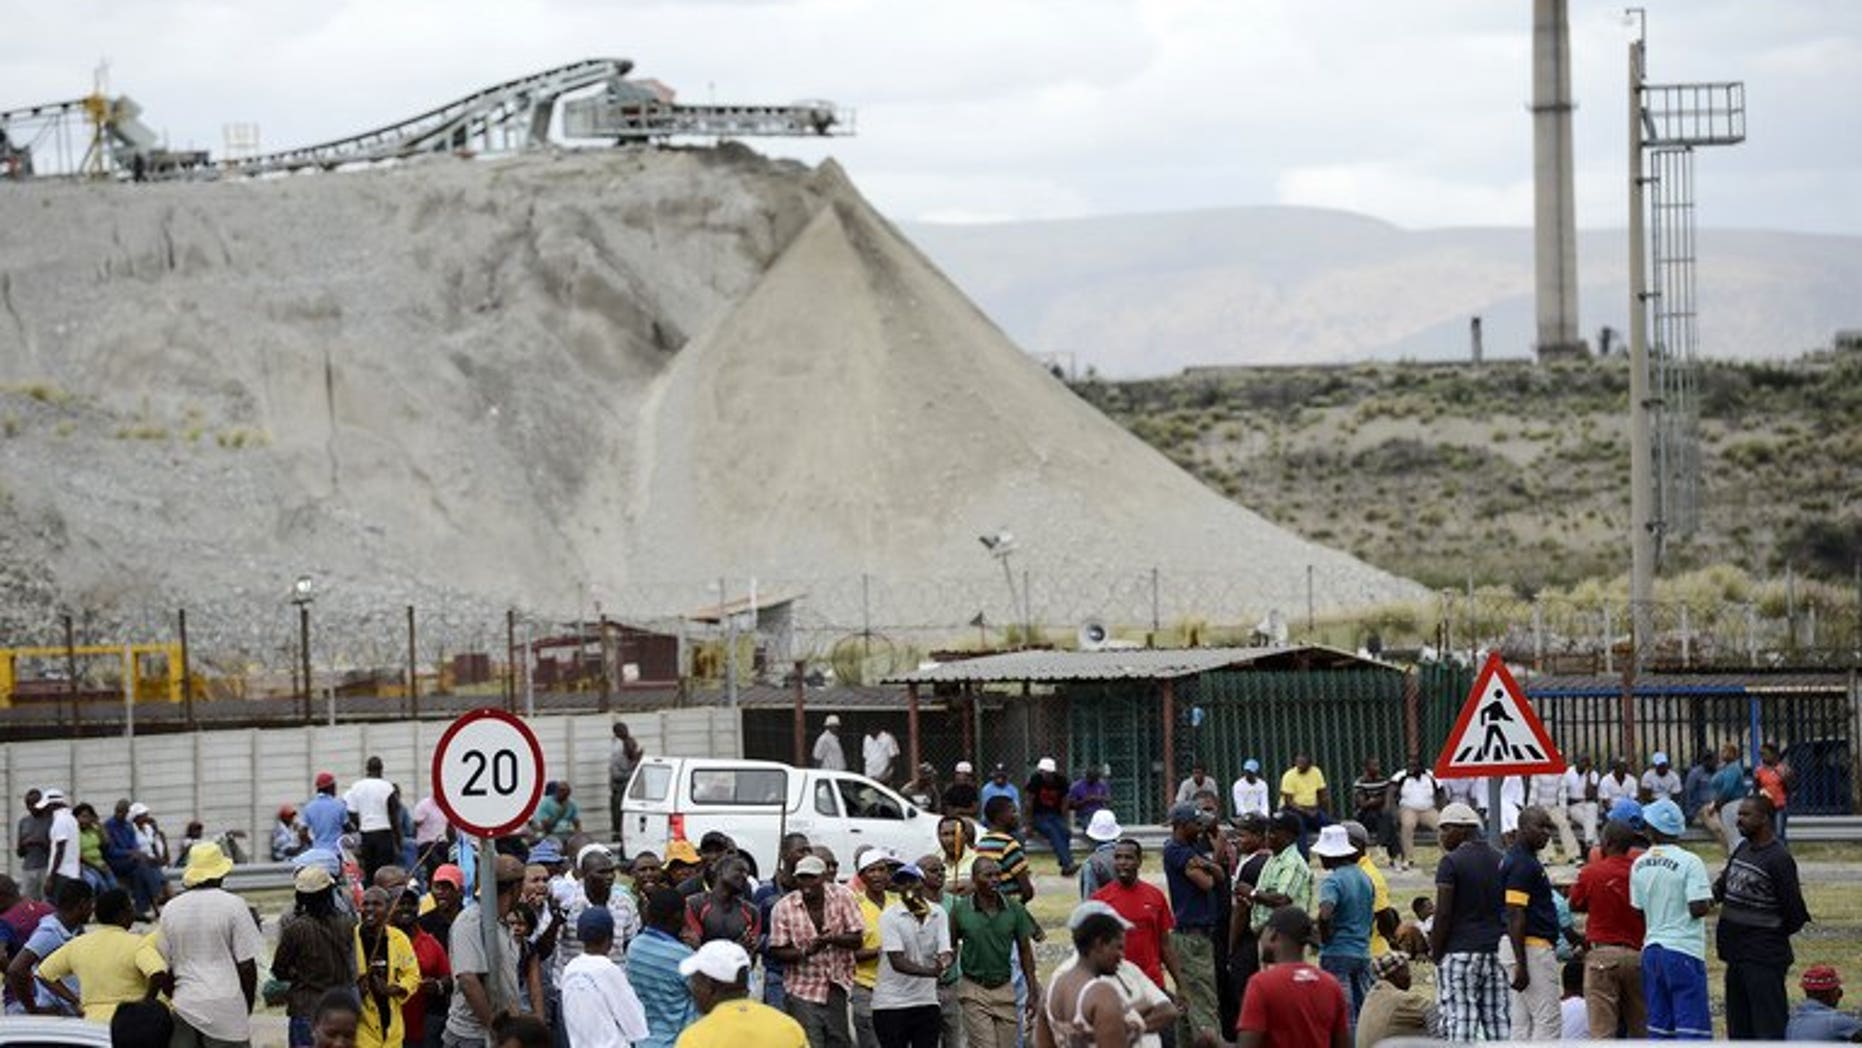 Anglo American Platinum workers who downed tools gather outside the Khomanani shaft in Rustenburg on January 16, 2013. Around 2,000 mineworkers converged at an Anglo American Platinum mine in South Africa's restive platinum belt over plans by the world's top producer to cut 6,900 jobs amid unrest in the sector.